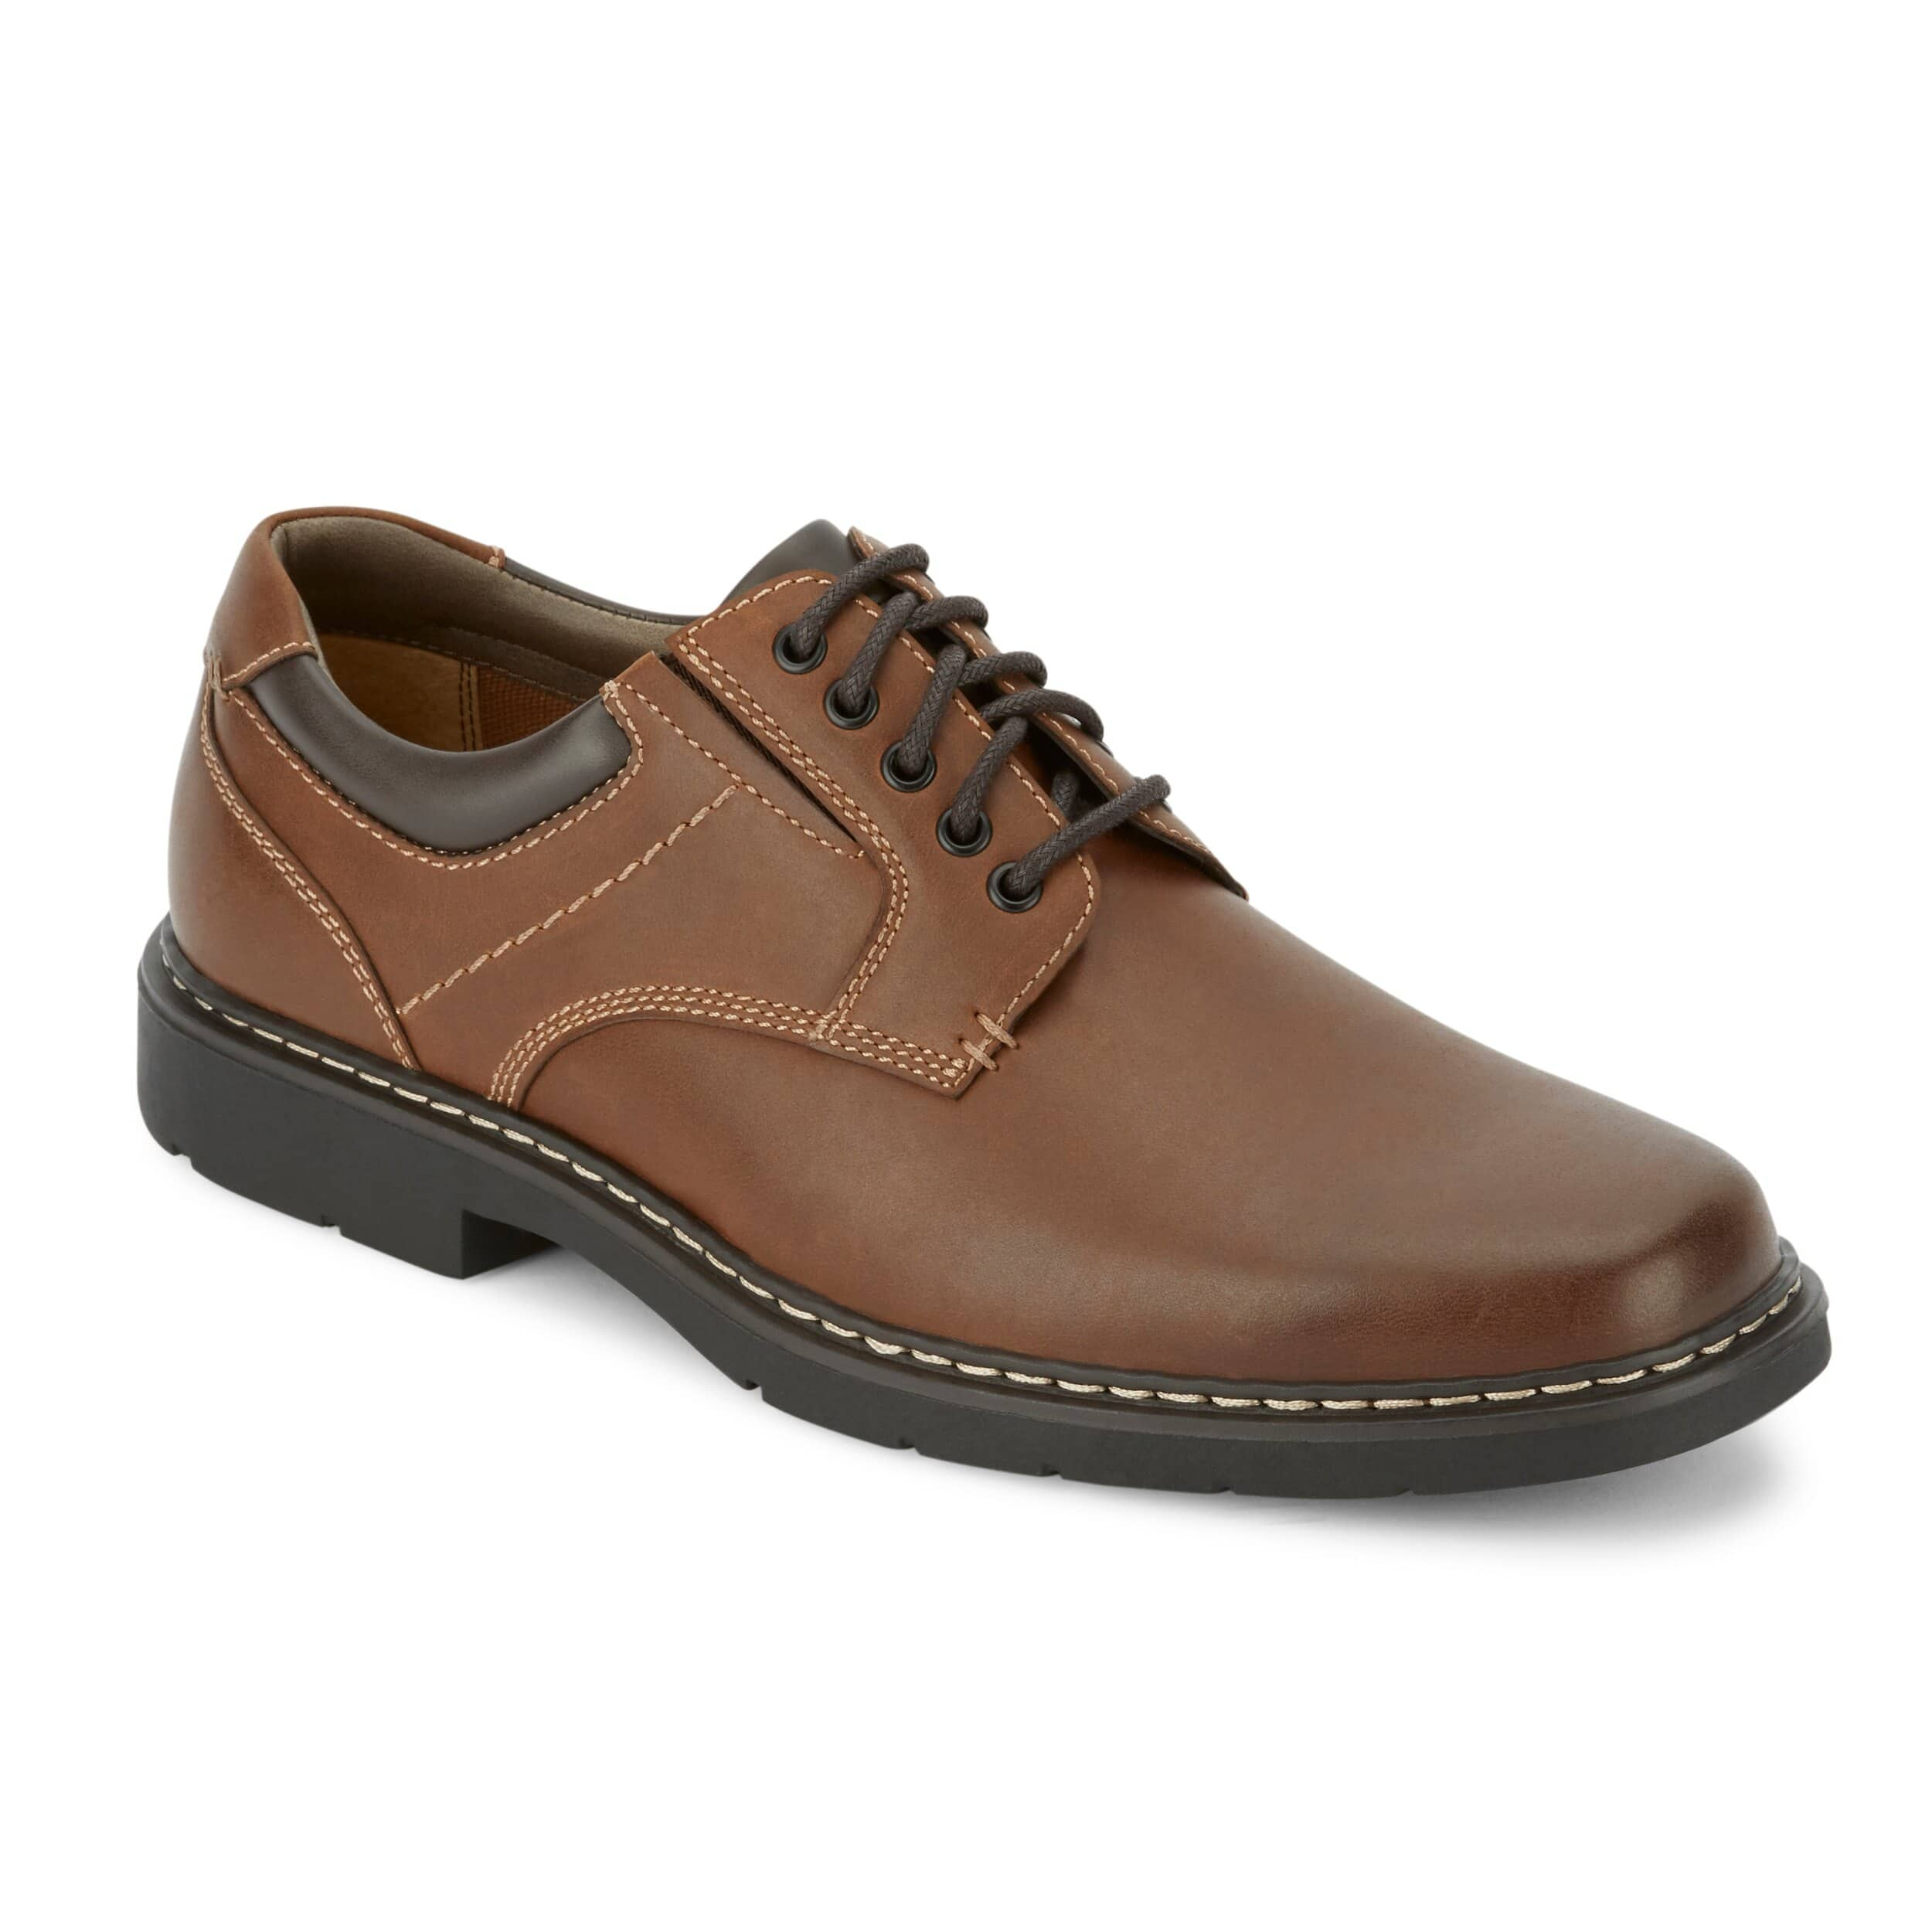 Dockers Men's Lowry Rugged Oxford Shoe : $23.99 AC + FS